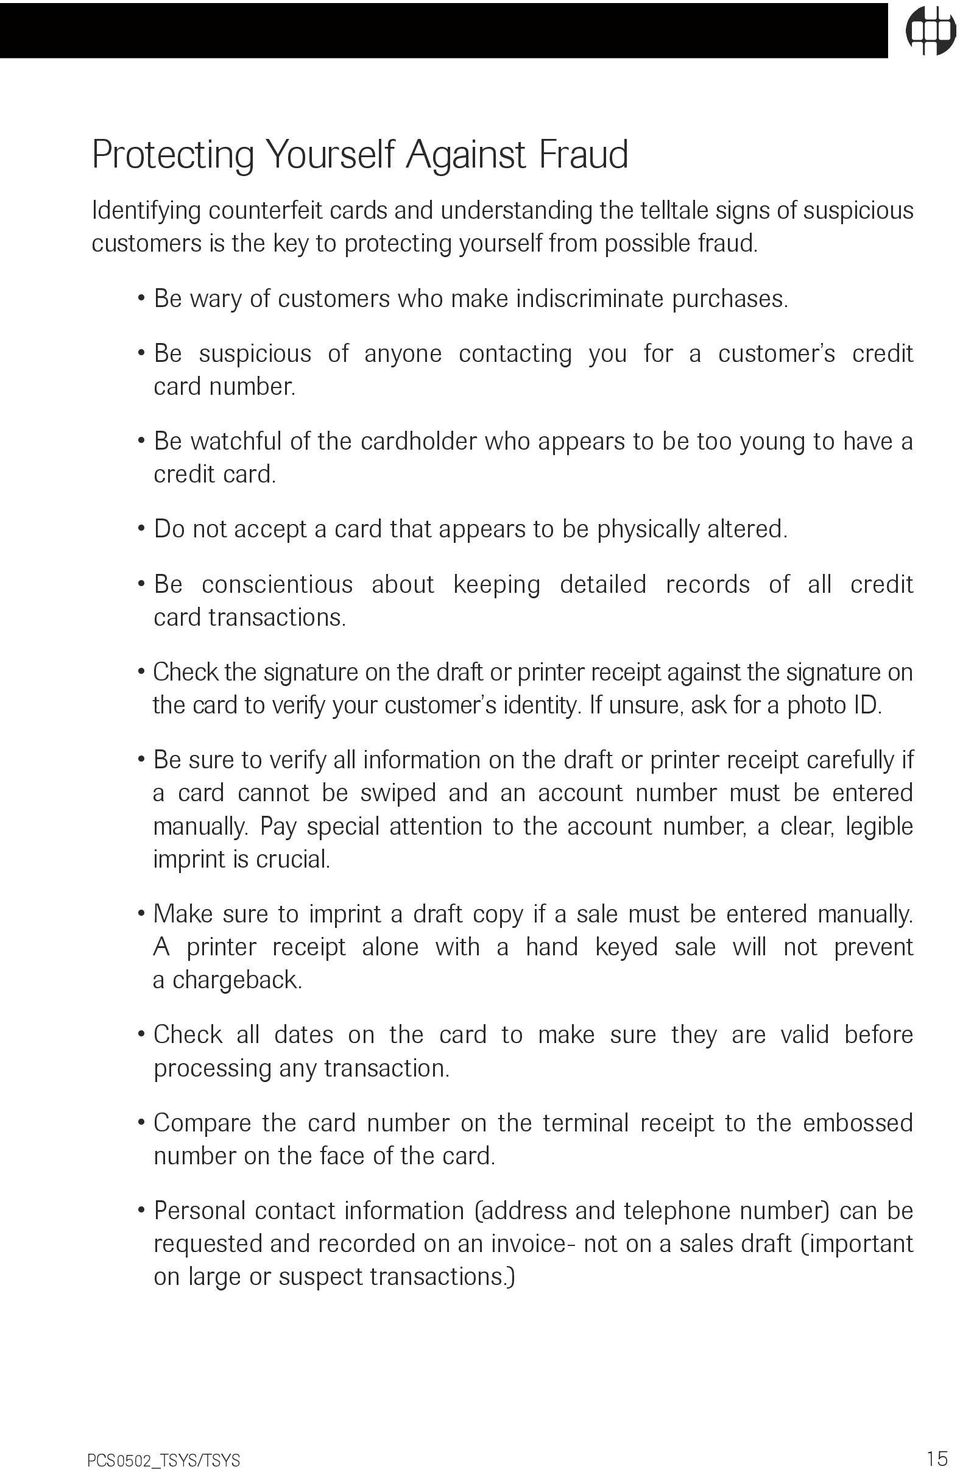 I am pivotal credit card processing handbook pdf be watchful of the cardholder who appears to be too young to have a credit card fandeluxe Gallery